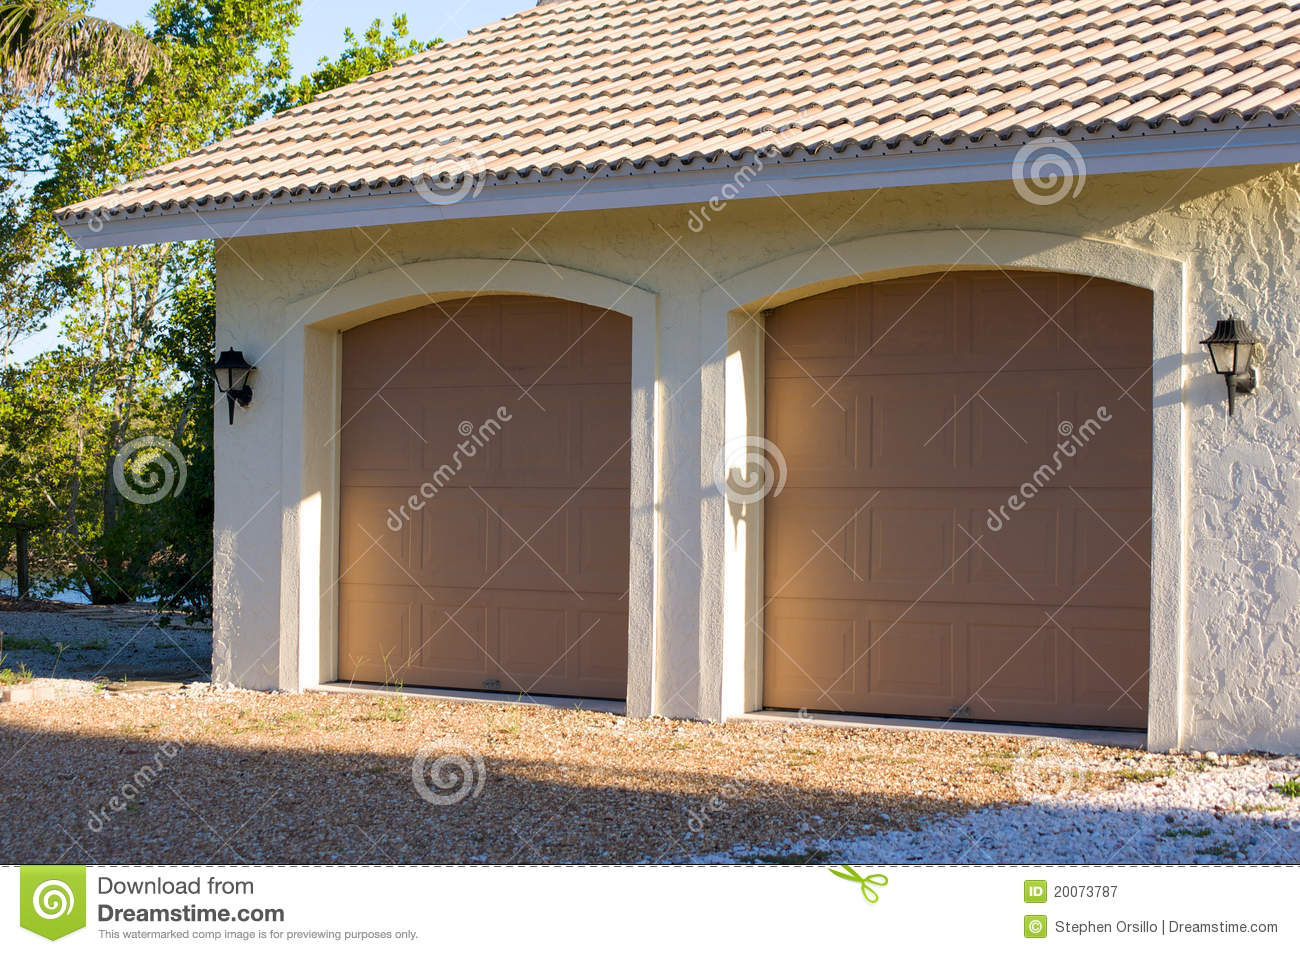 954 #916C3A  Of Exterior Of Modern Two Car Garage With Doors Closed In Florida wallpaper Two Car Garage Doors 37651300